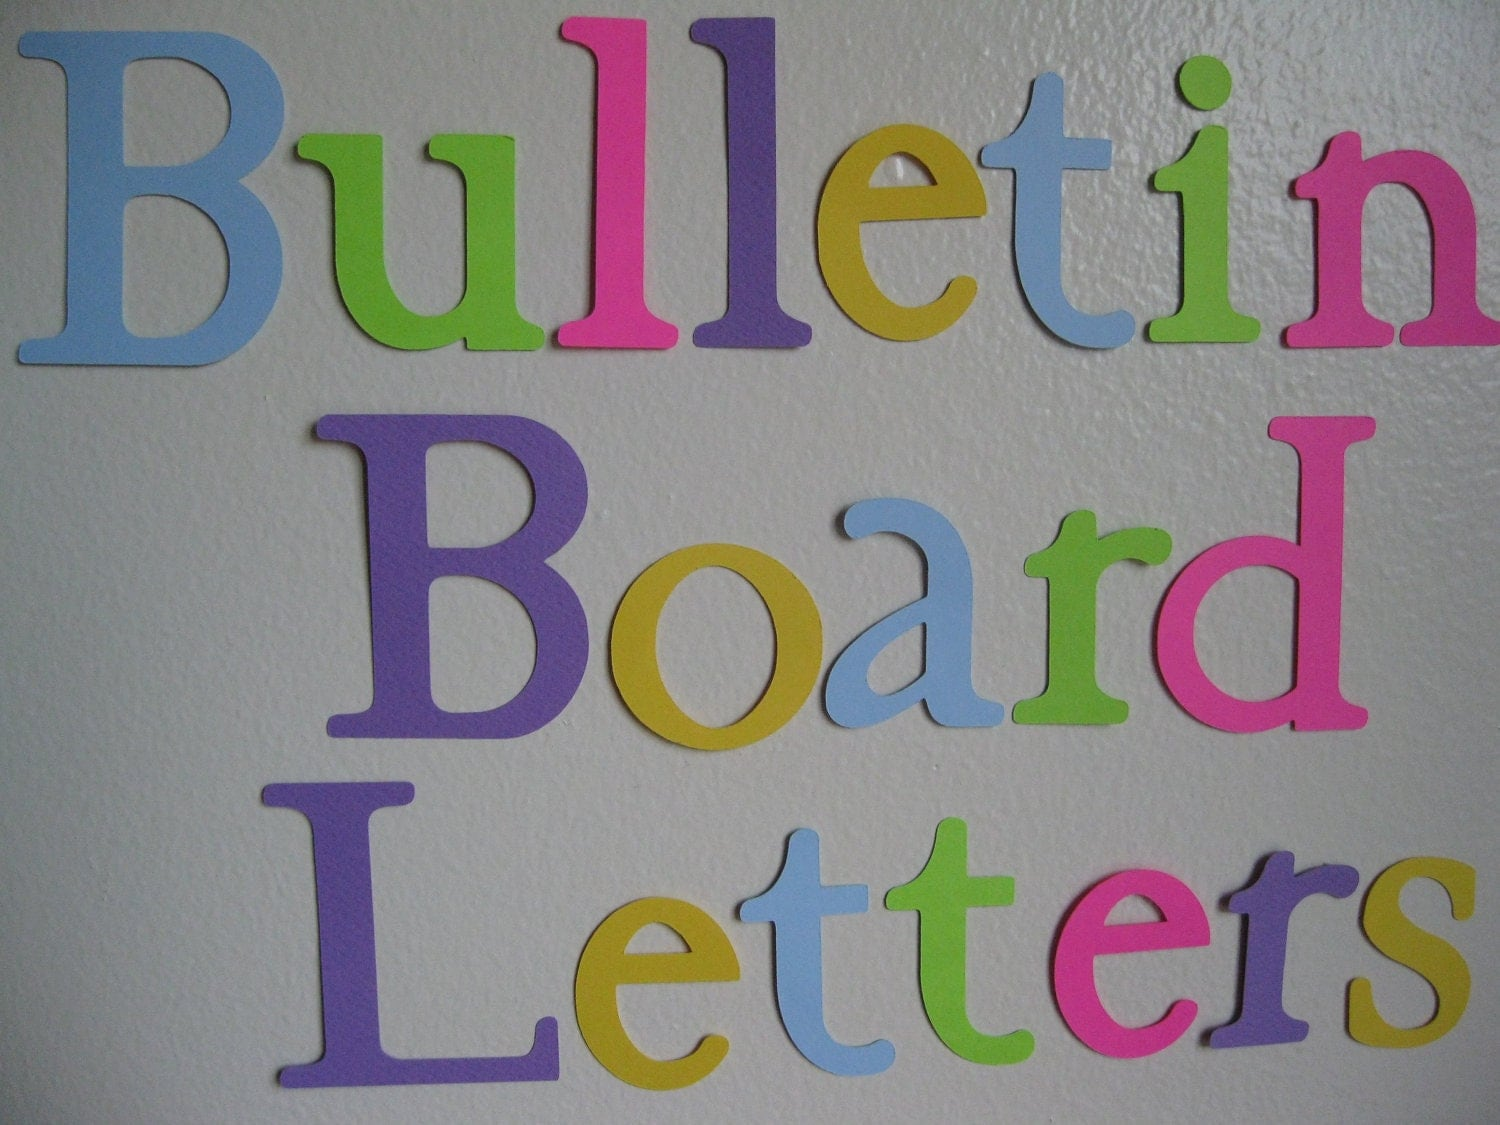 20 30 die cut letters bulletin board letters With letter cutter for bulletin boards